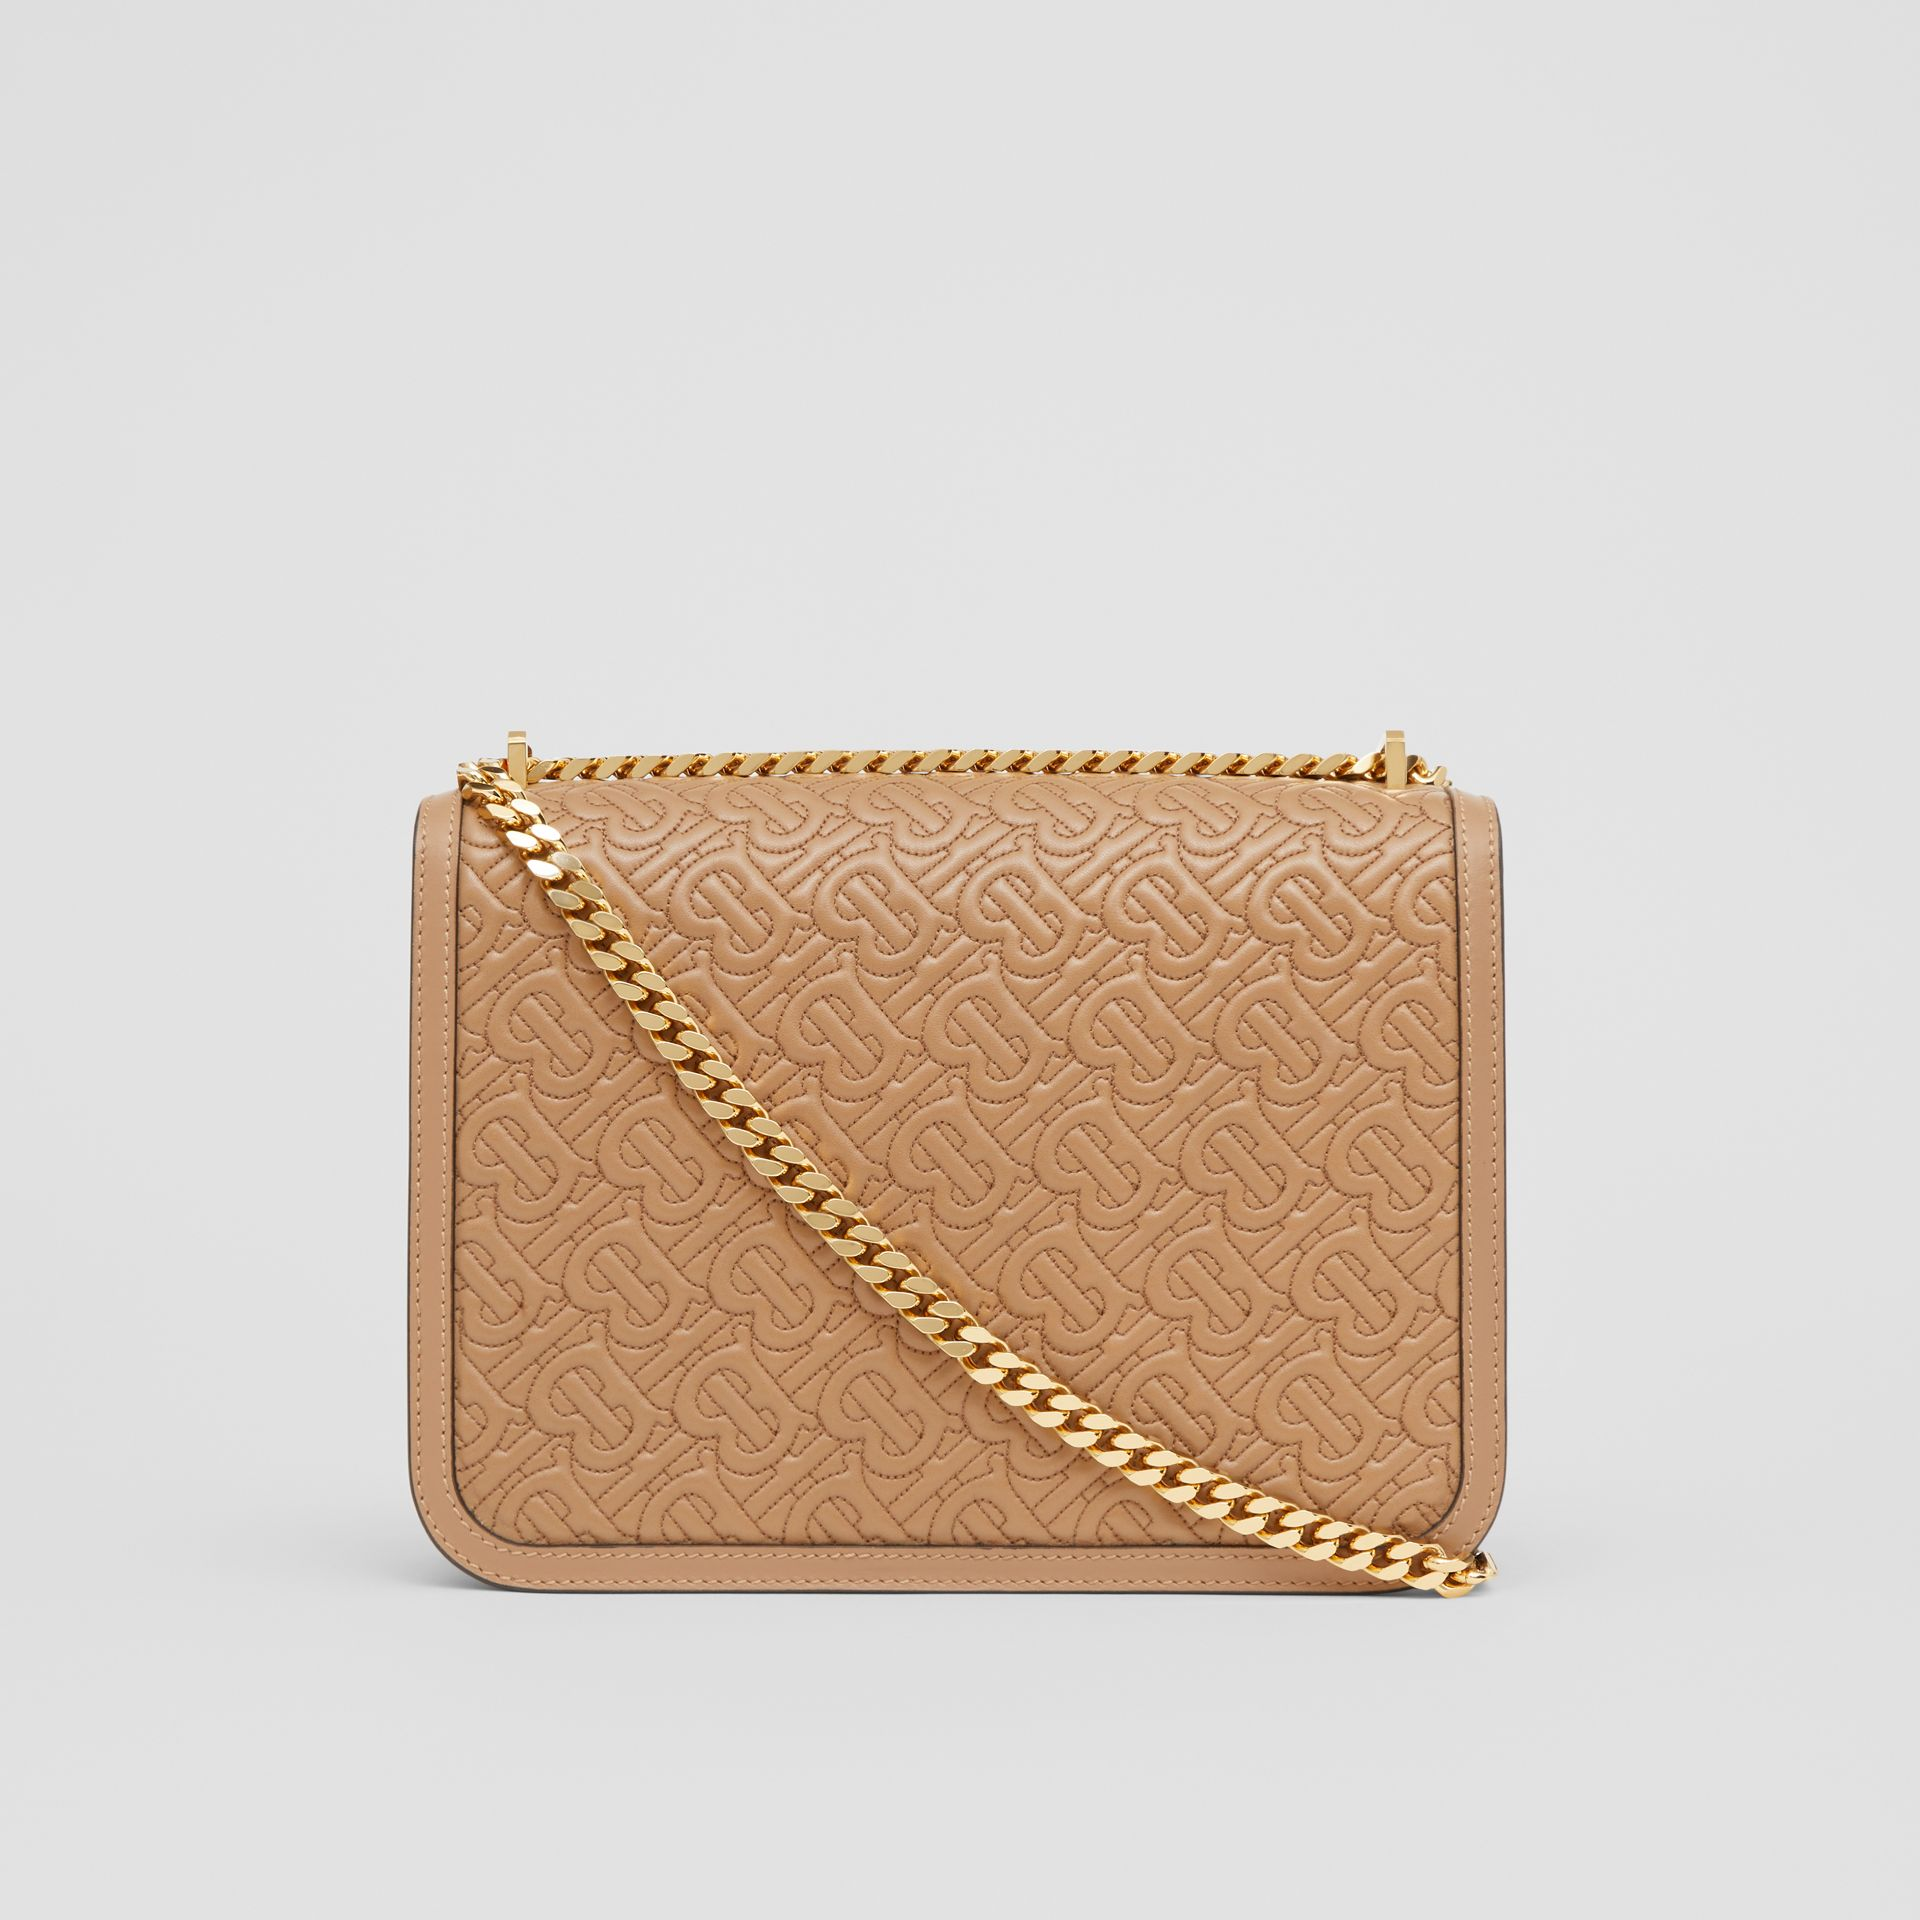 Medium Quilted Monogram Lambskin TB Bag in Honey - Women | Burberry United Kingdom - gallery image 7